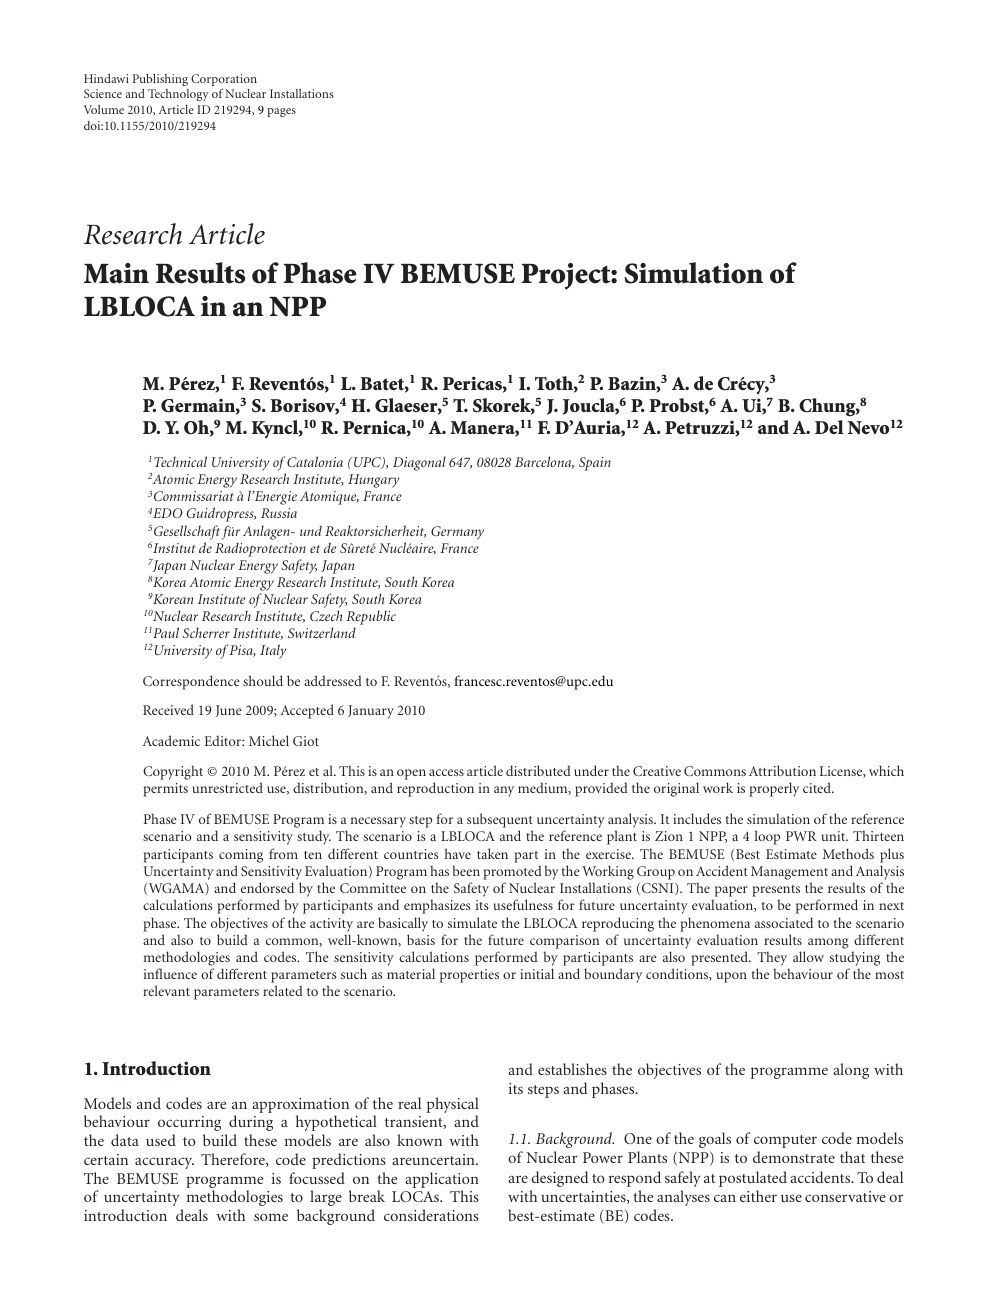 Main Results of Phase IV BEMUSE Project: Simulation of LBLOCA in an